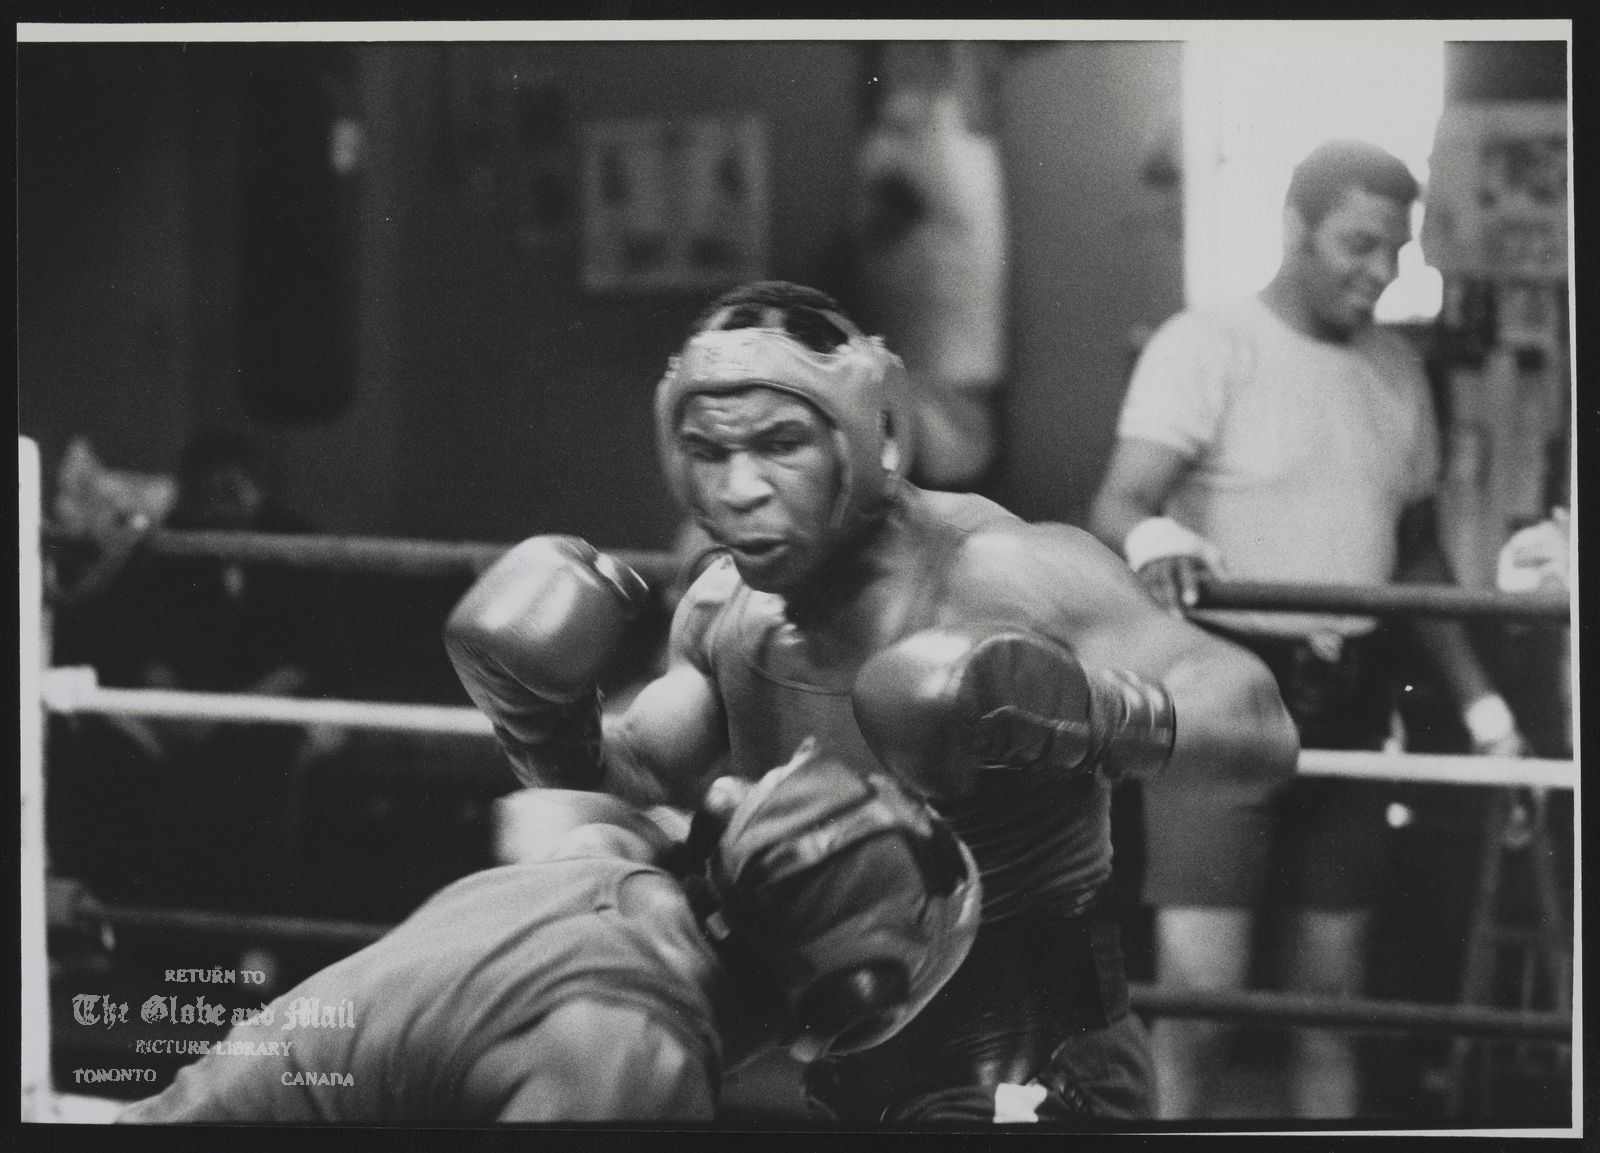 MIKE TYSON BOXING MIKE TYSON, THE GREAT BLACK HOPE, SPARS IN A TRAINING CAMP AT CATSKILL, N Y., IN 1986.